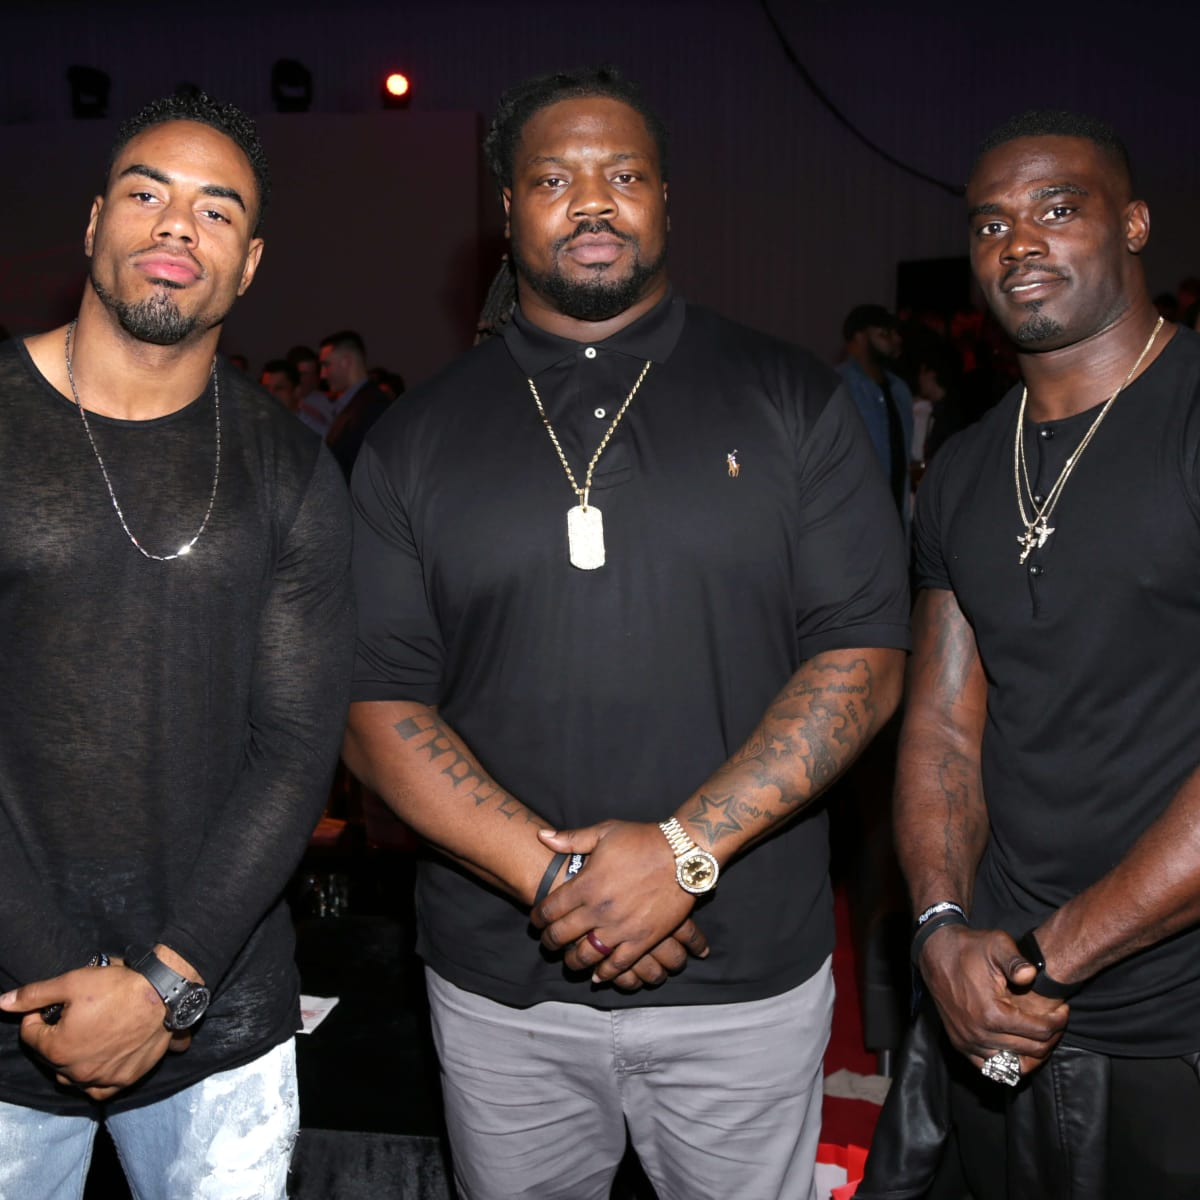 Houston, Rolling Stone Super Bowl party, Jan 2017, Rashad Jennings, Damon Harrison, James Ihedigbo